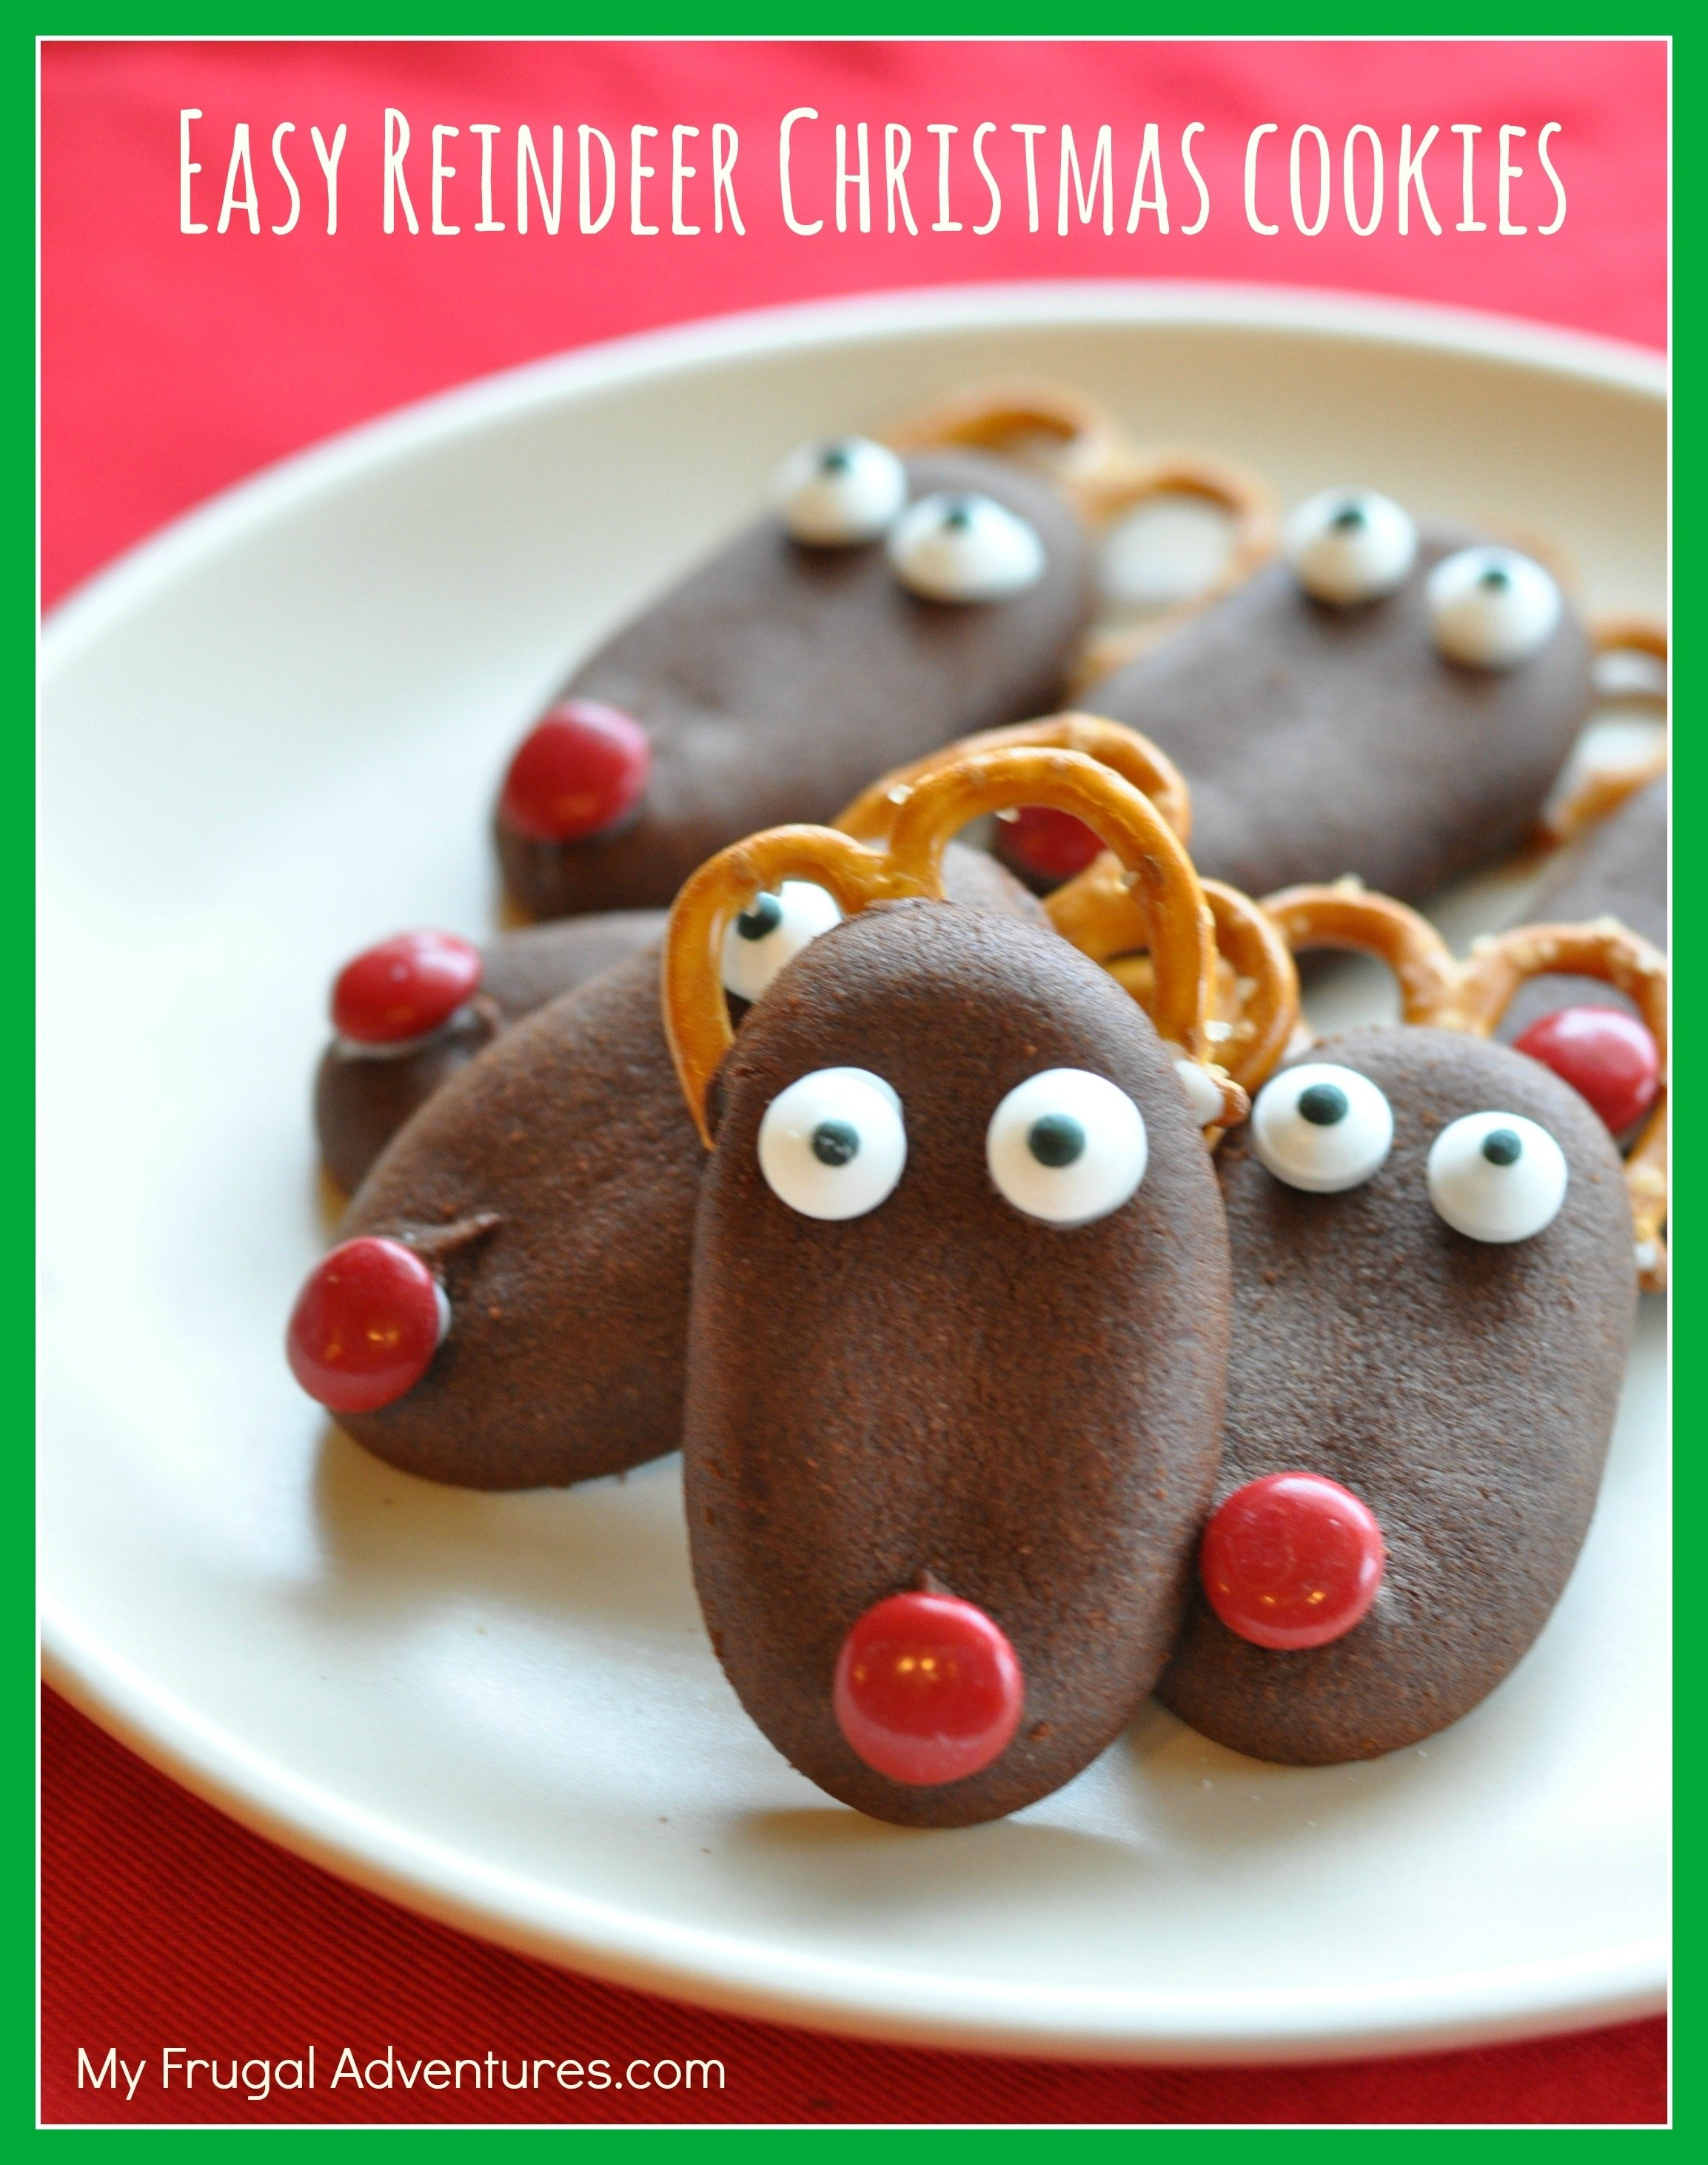 10 Fabulous Fun Baking Ideas For Kids quick easy reindeer christmas cookies my frugal adventures 1 2020